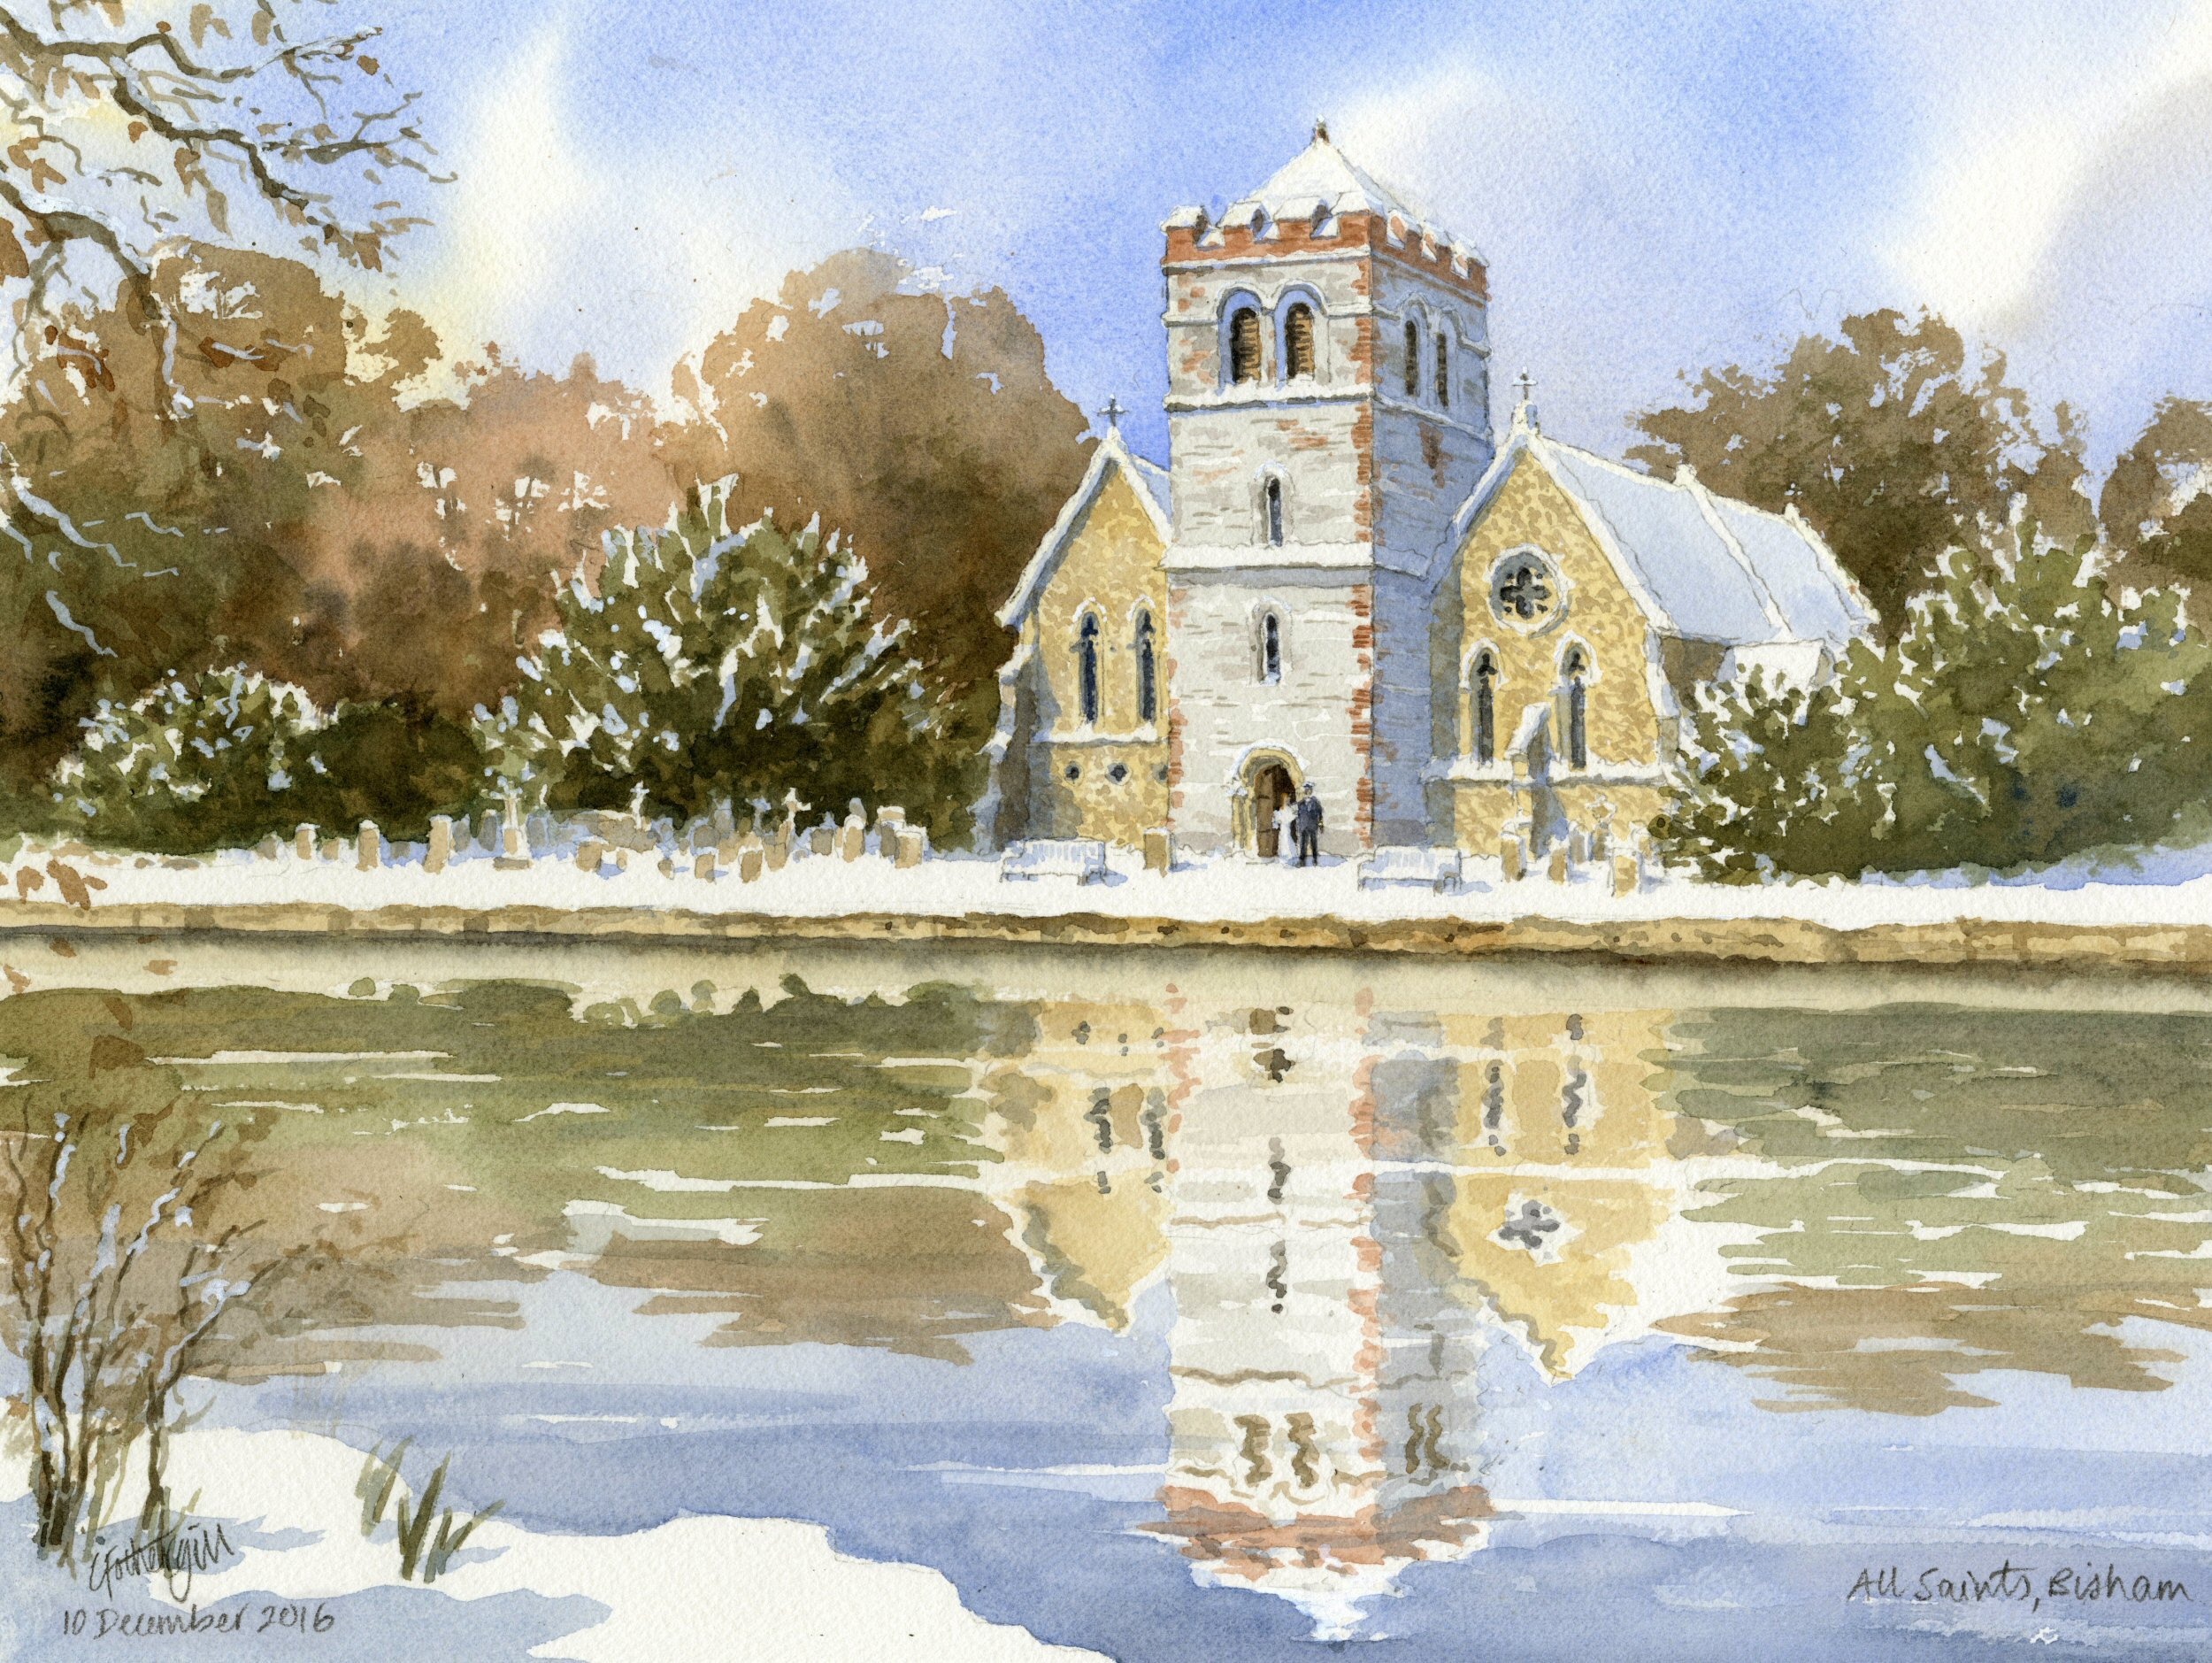 All Saints Church, Bisham in snow